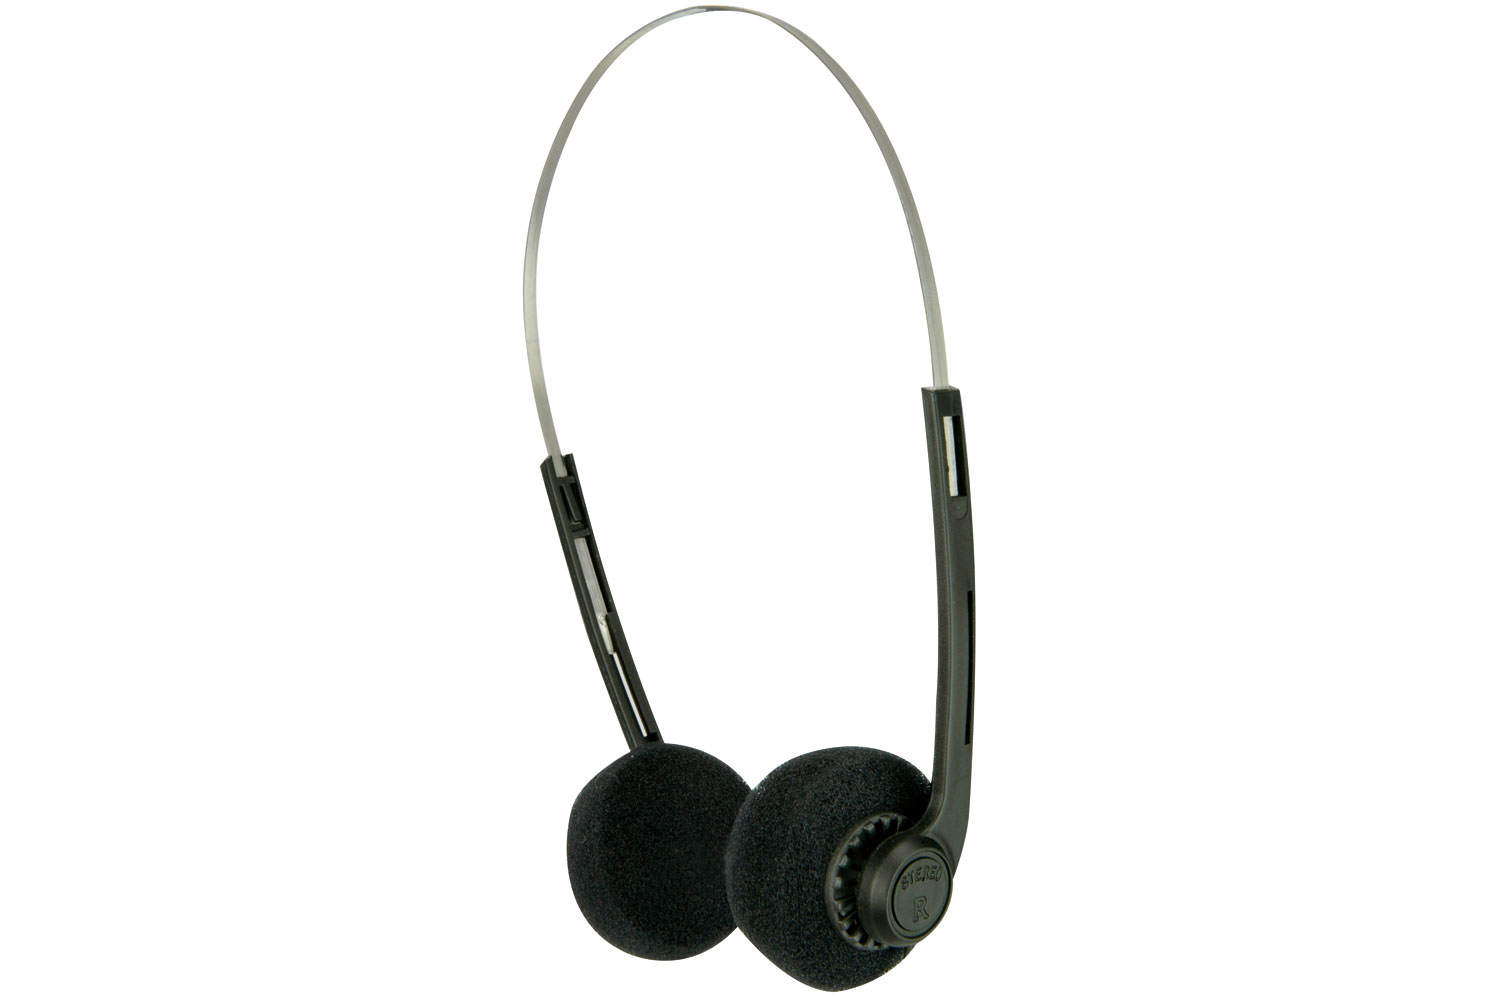 AV Link 100.035UK headphone Circumaural Head-band Black